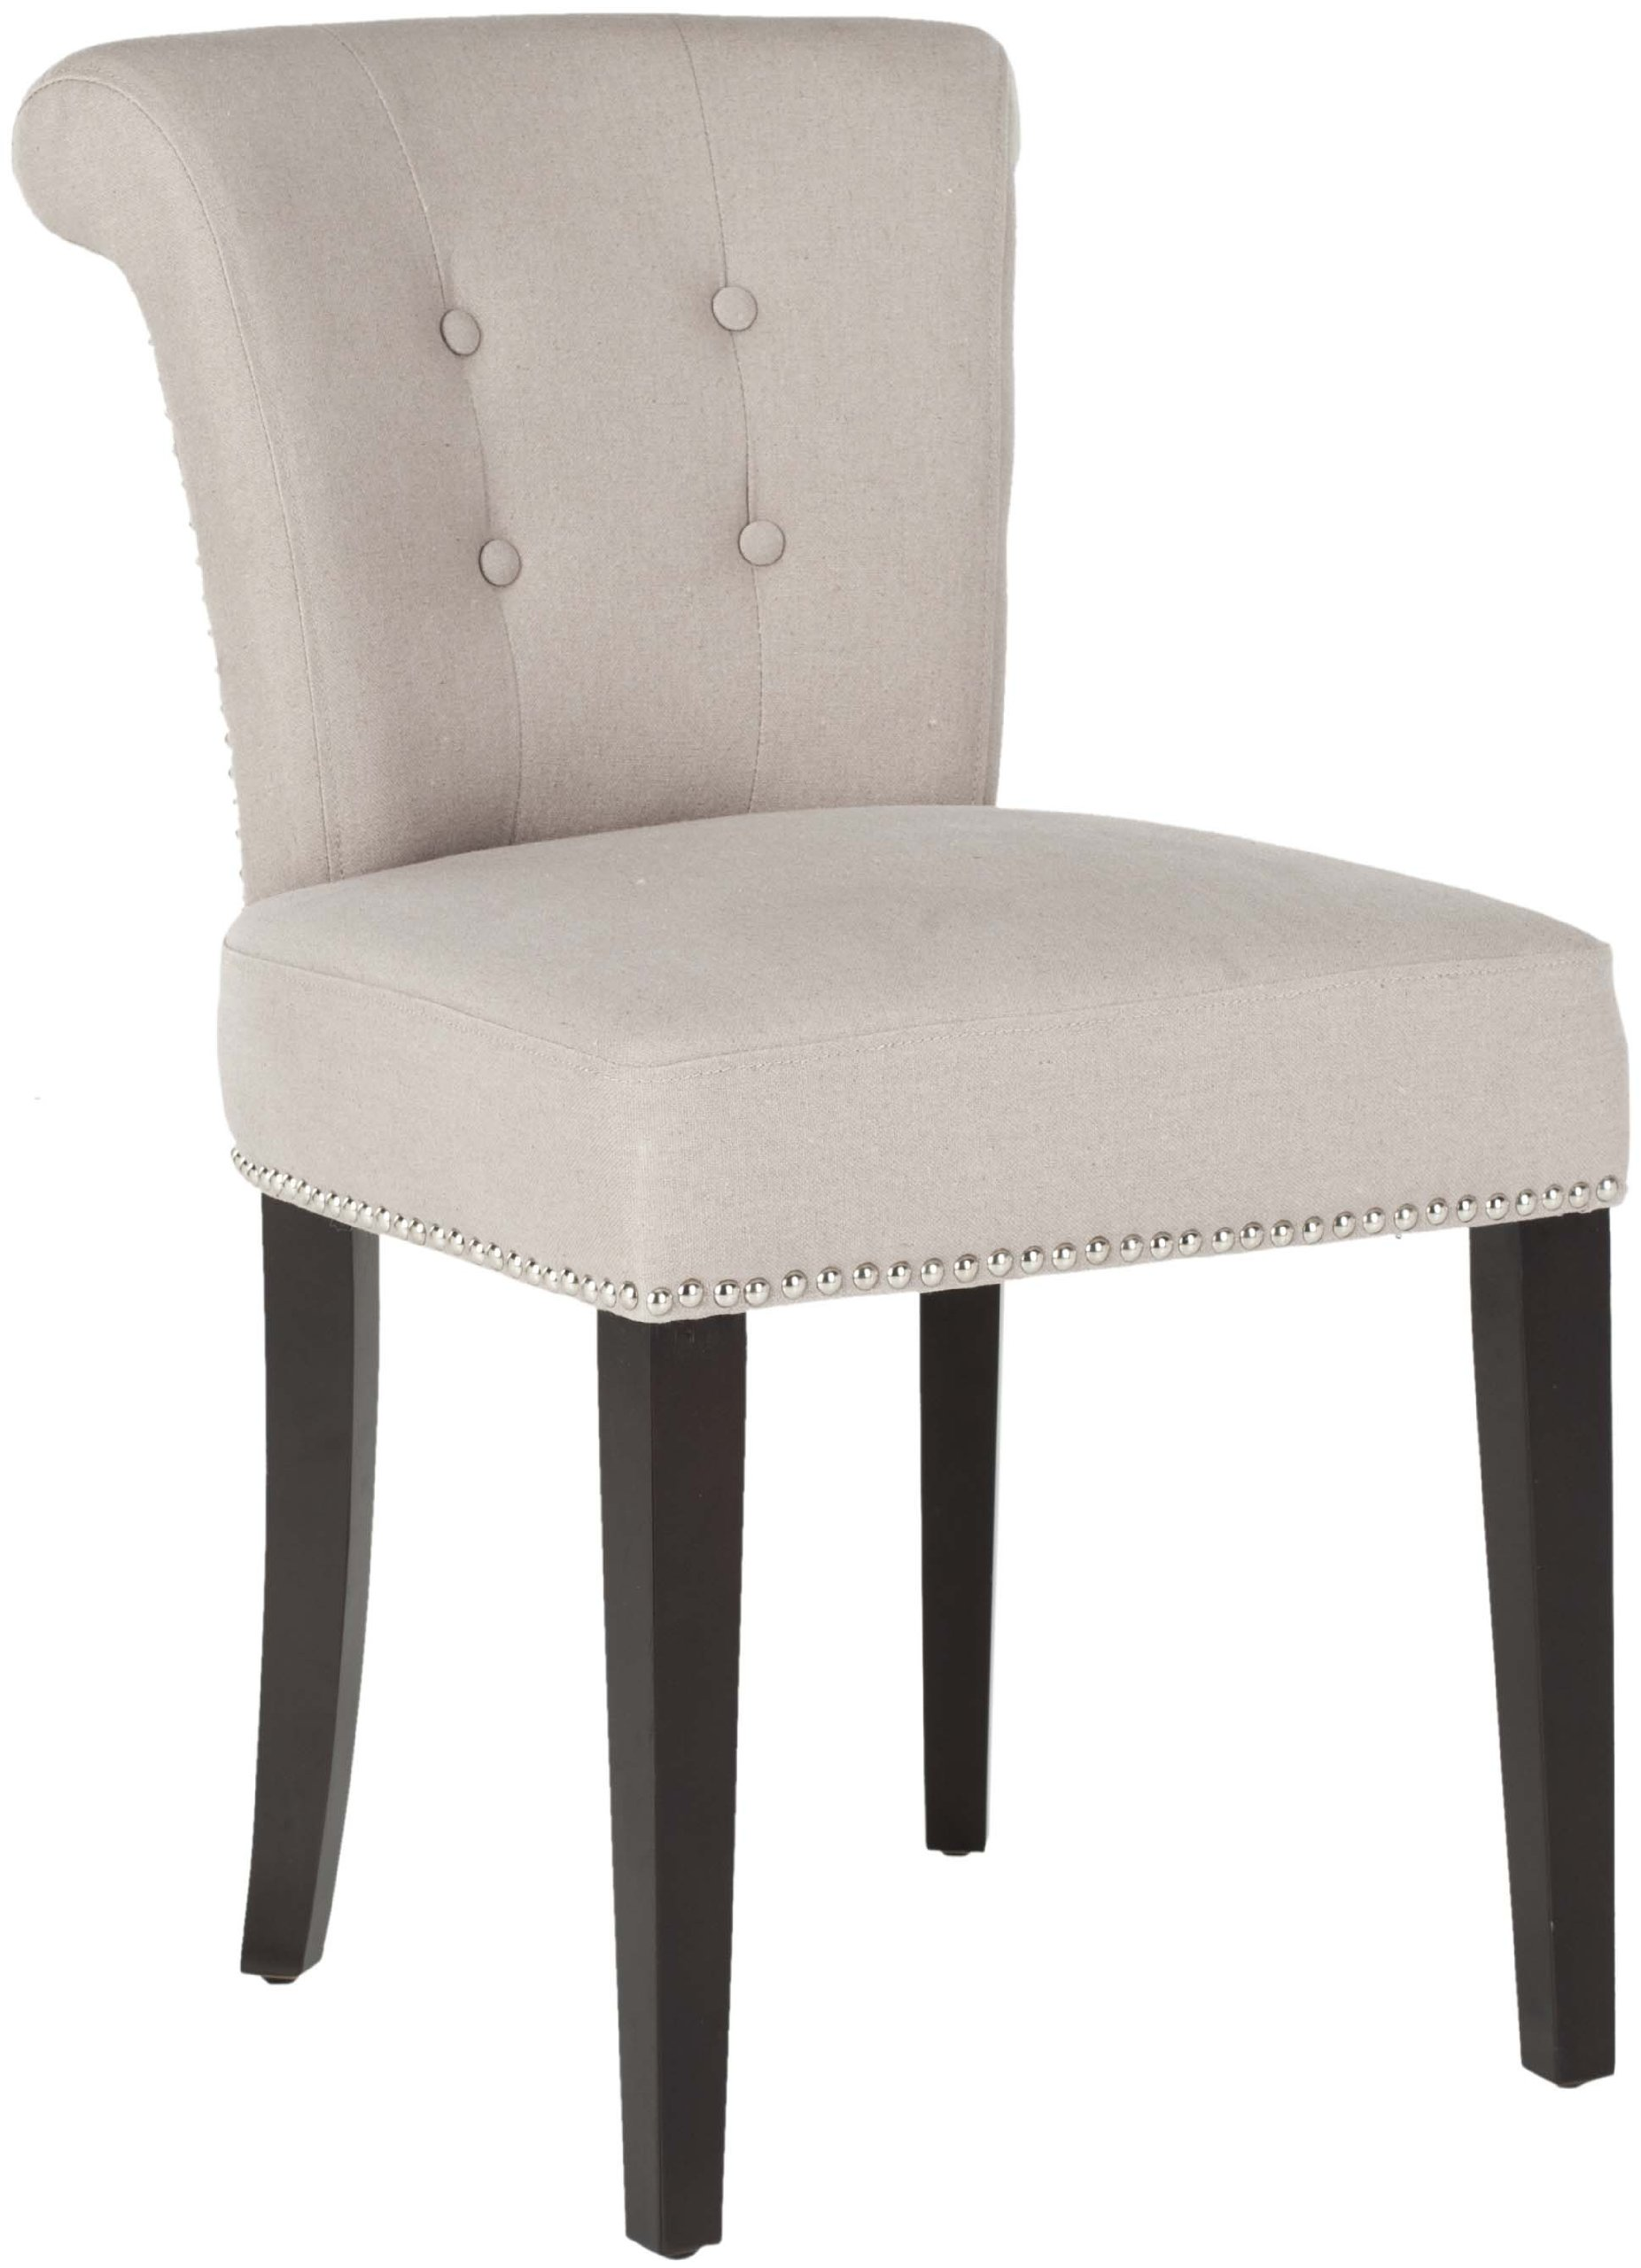 Taupe Dining Chairs Safavieh Mercer Collection Carol Taupe Linen Ring Dining